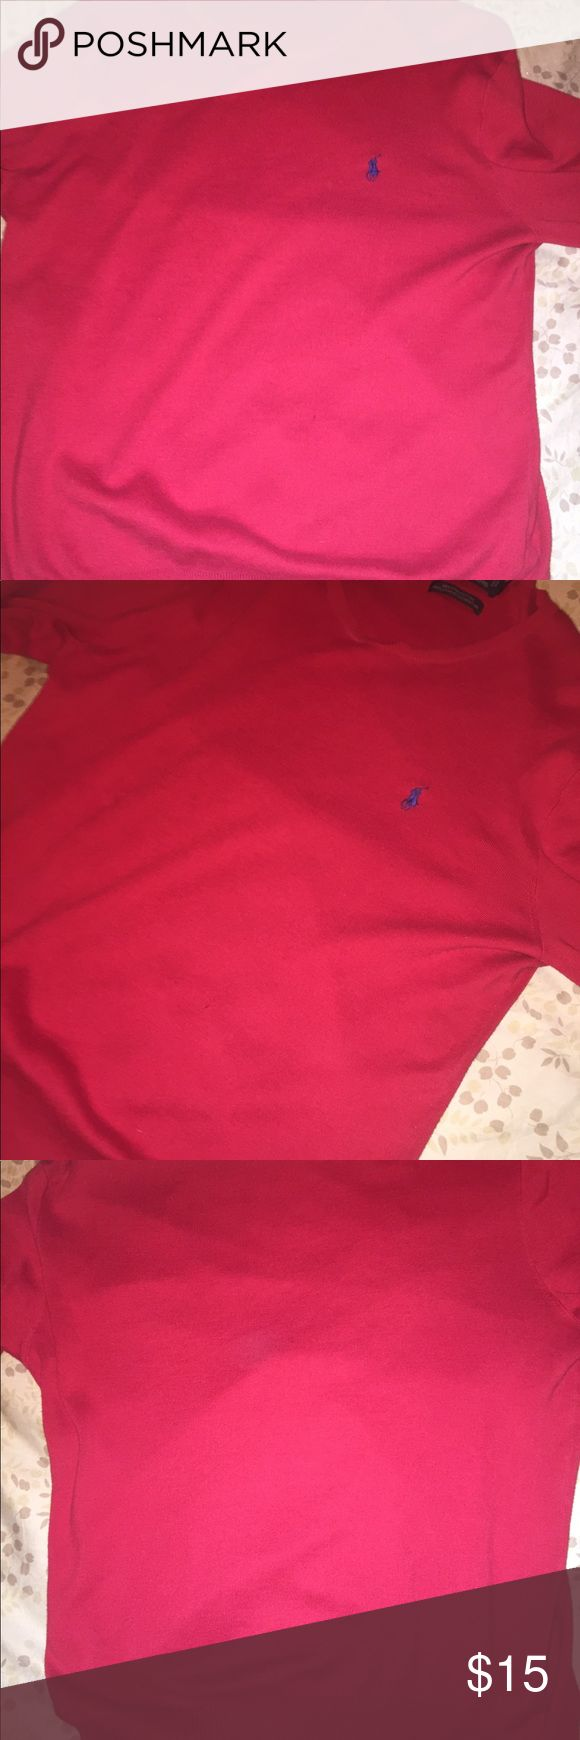 Polo Ralph Lauren texture sweatshirt Polo Ralph Lauren sweatshirt comes in red and is great for dressing up or going out for a casual hangout. This is in good condition and has been worn a few times but not too much. FYI The sweatshirt has a tiny hole down the middle of it but isn't that noticeable. Polo by Ralph Lauren Sweaters